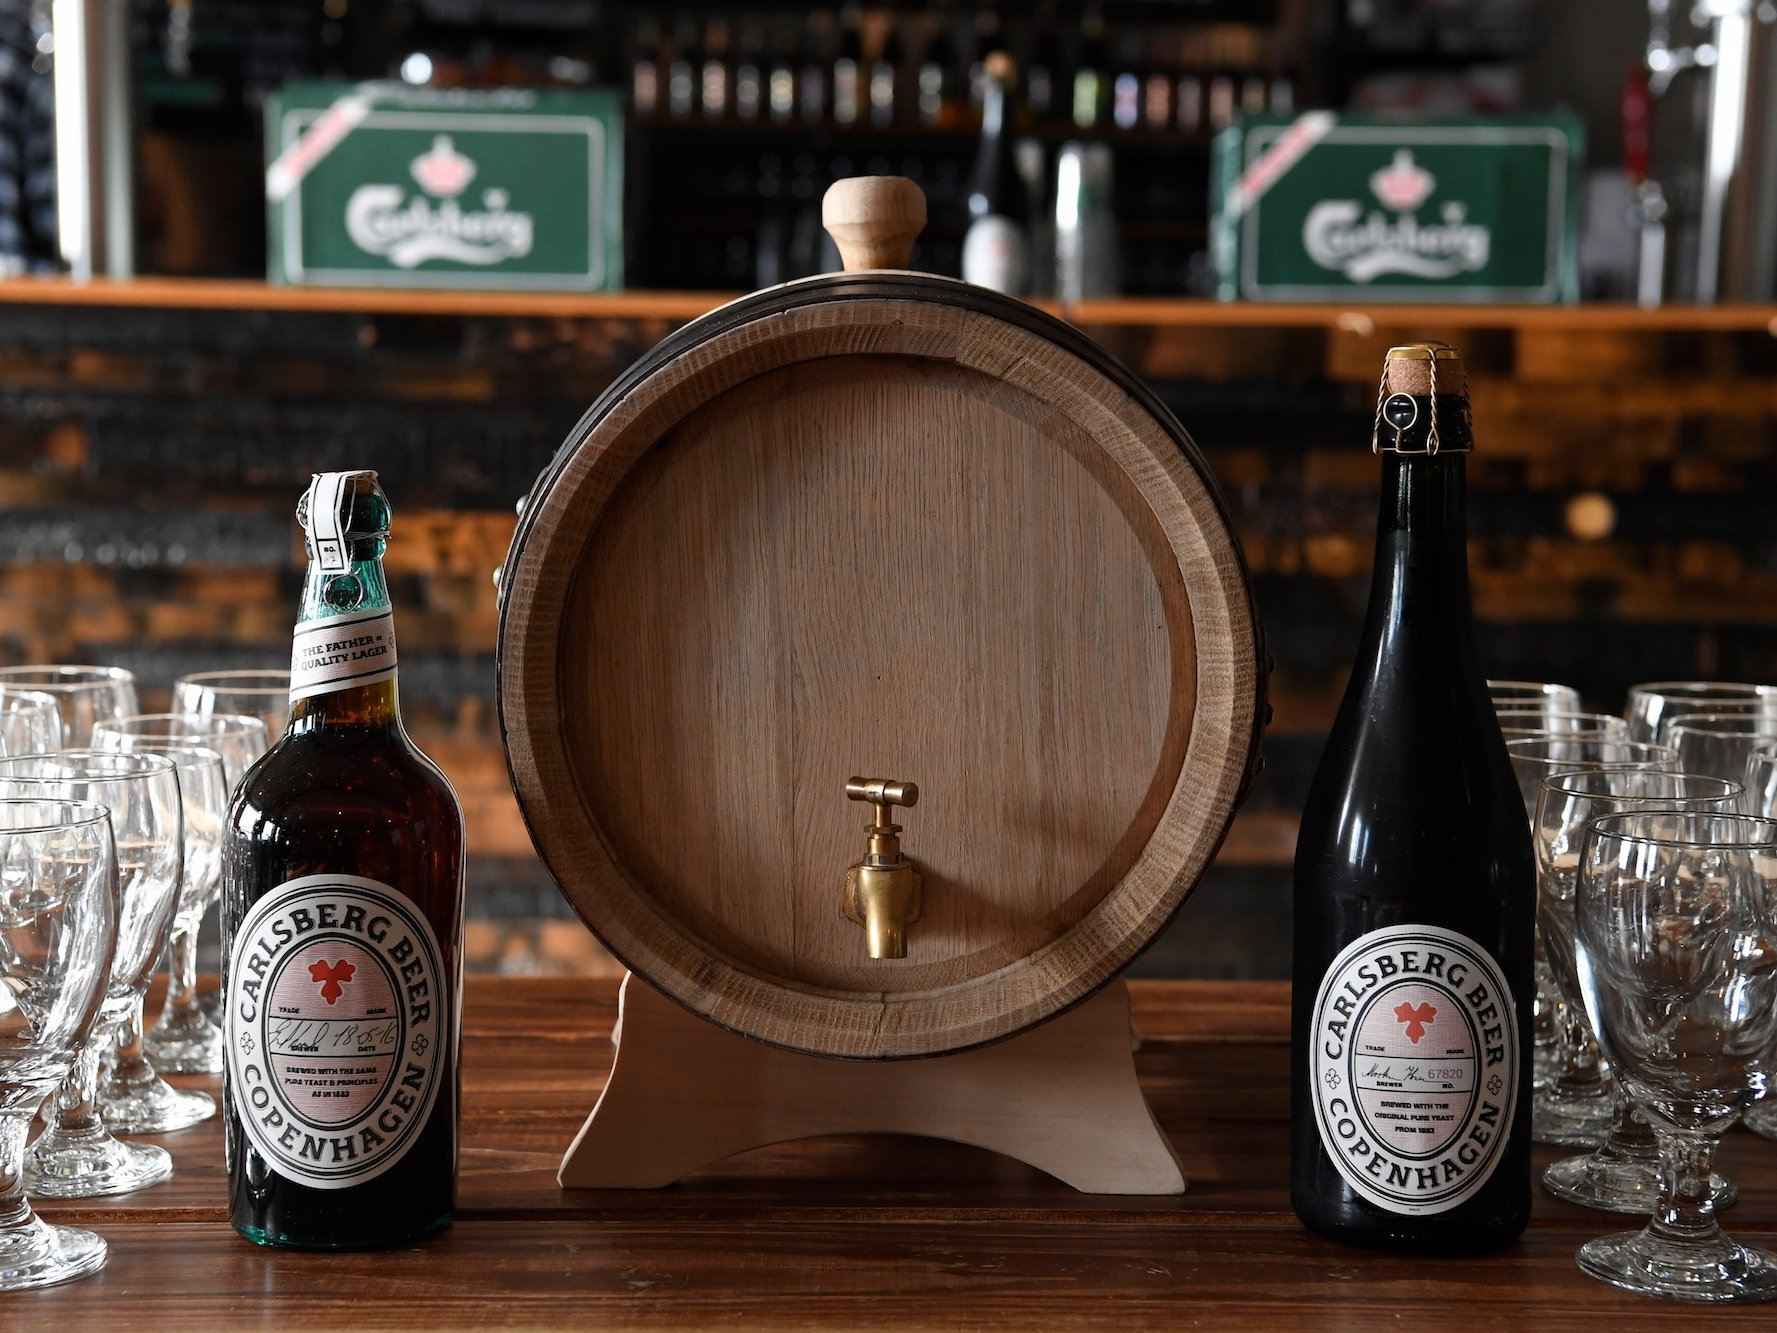 Carlsberg Rebrew beer made with ancient lager yeast